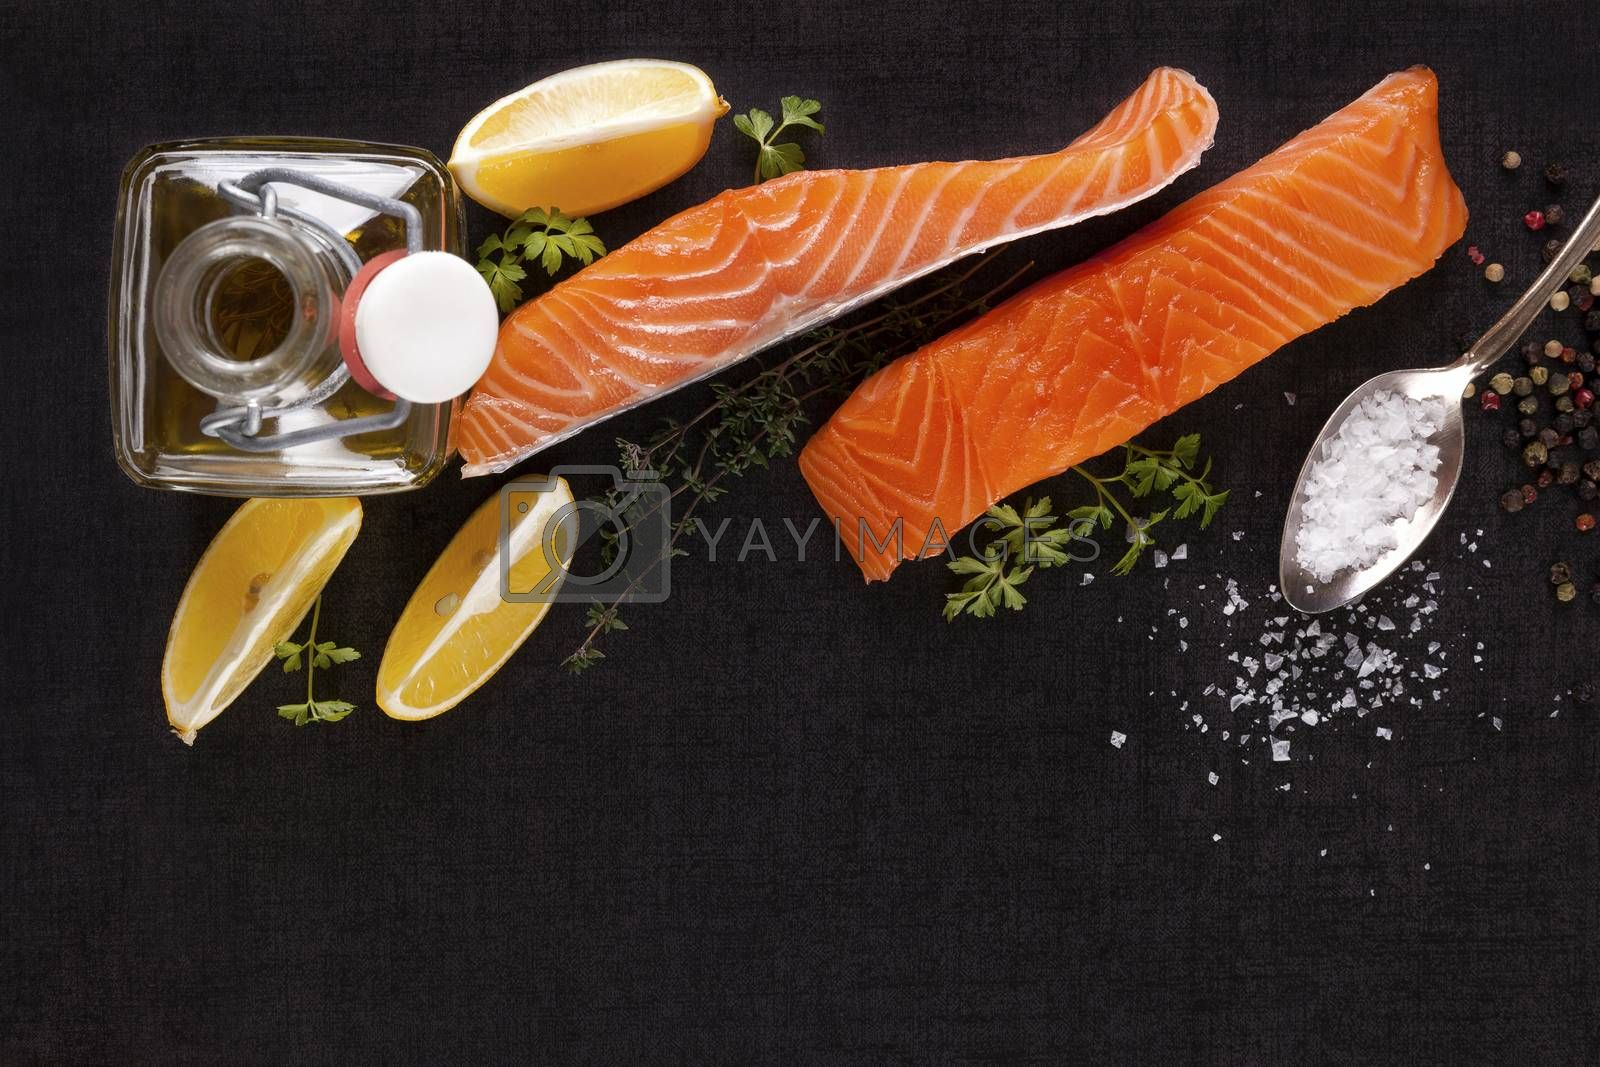 Salmon background with copyspace. Salmon steak, lemon, rosemary and parsley leaf and salt on black background, flat lay.